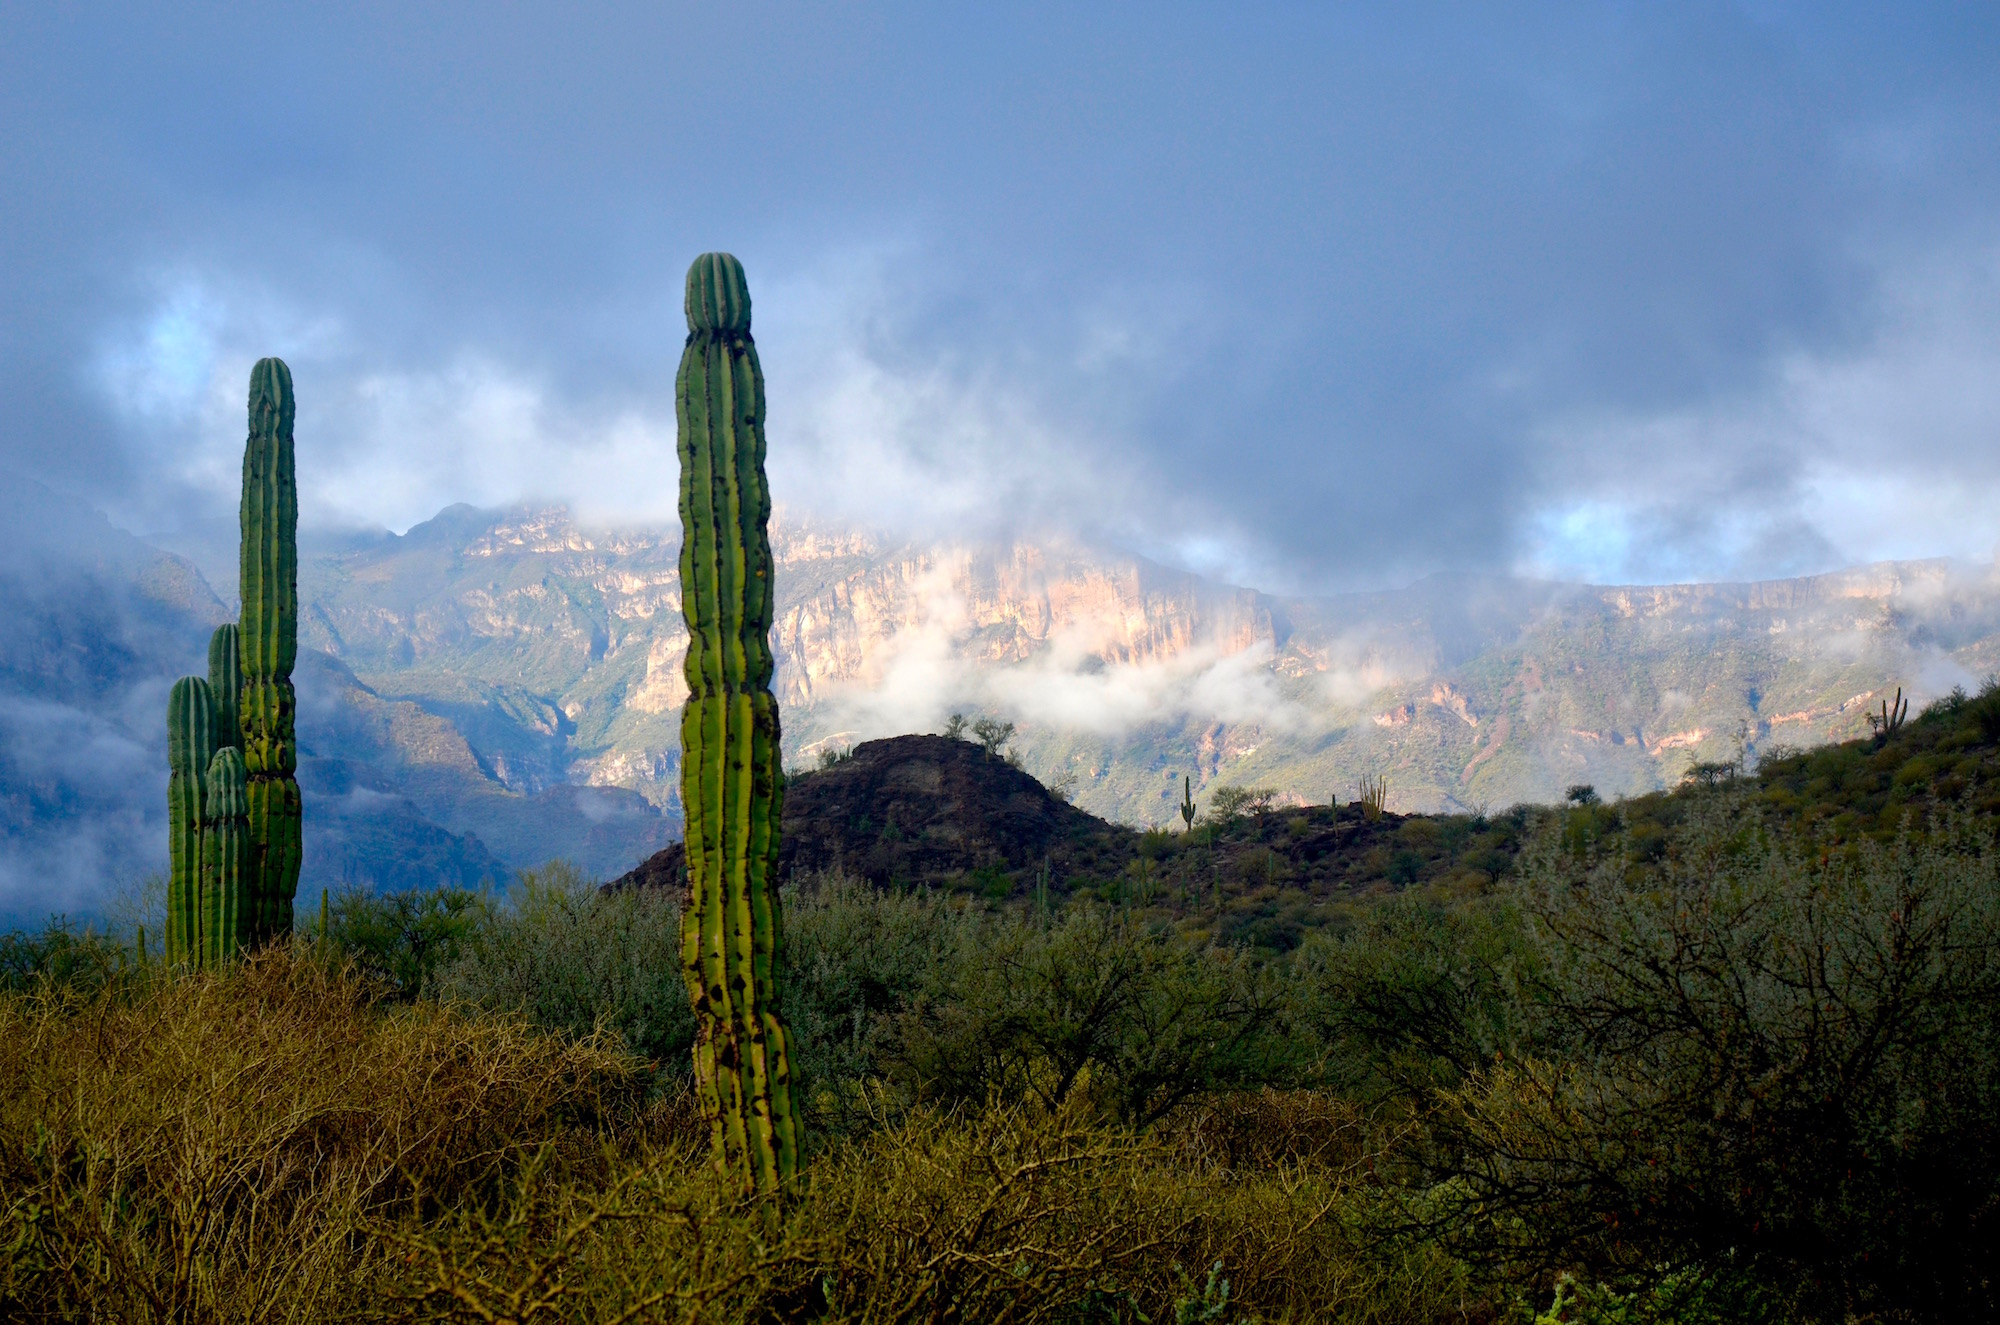 Cactus with clouds and mountains in the background